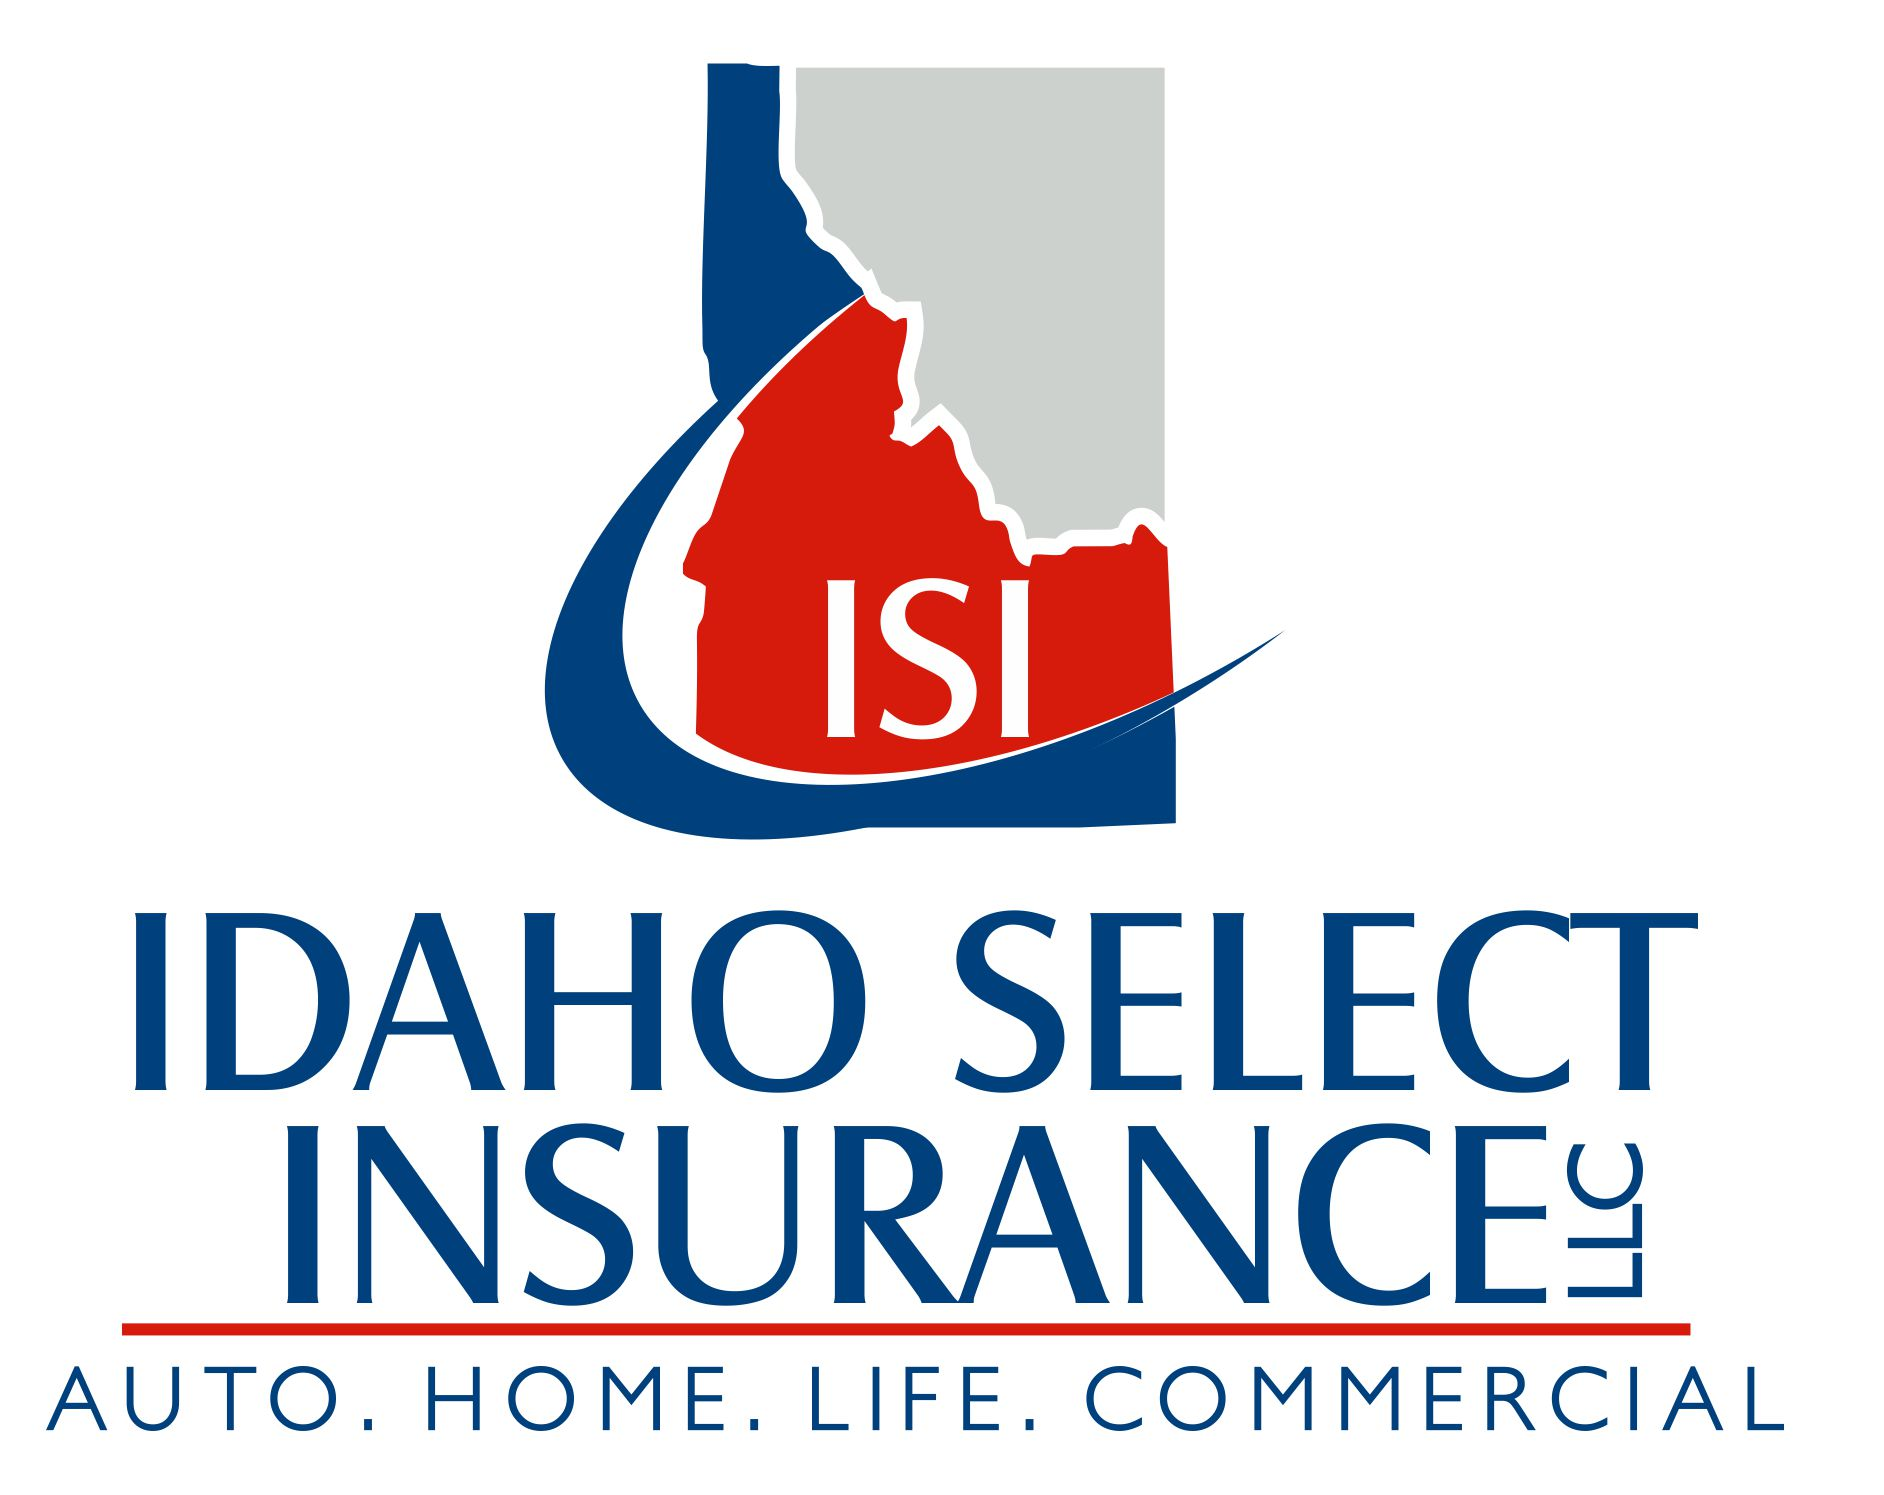 Idaho Select Insurance logo